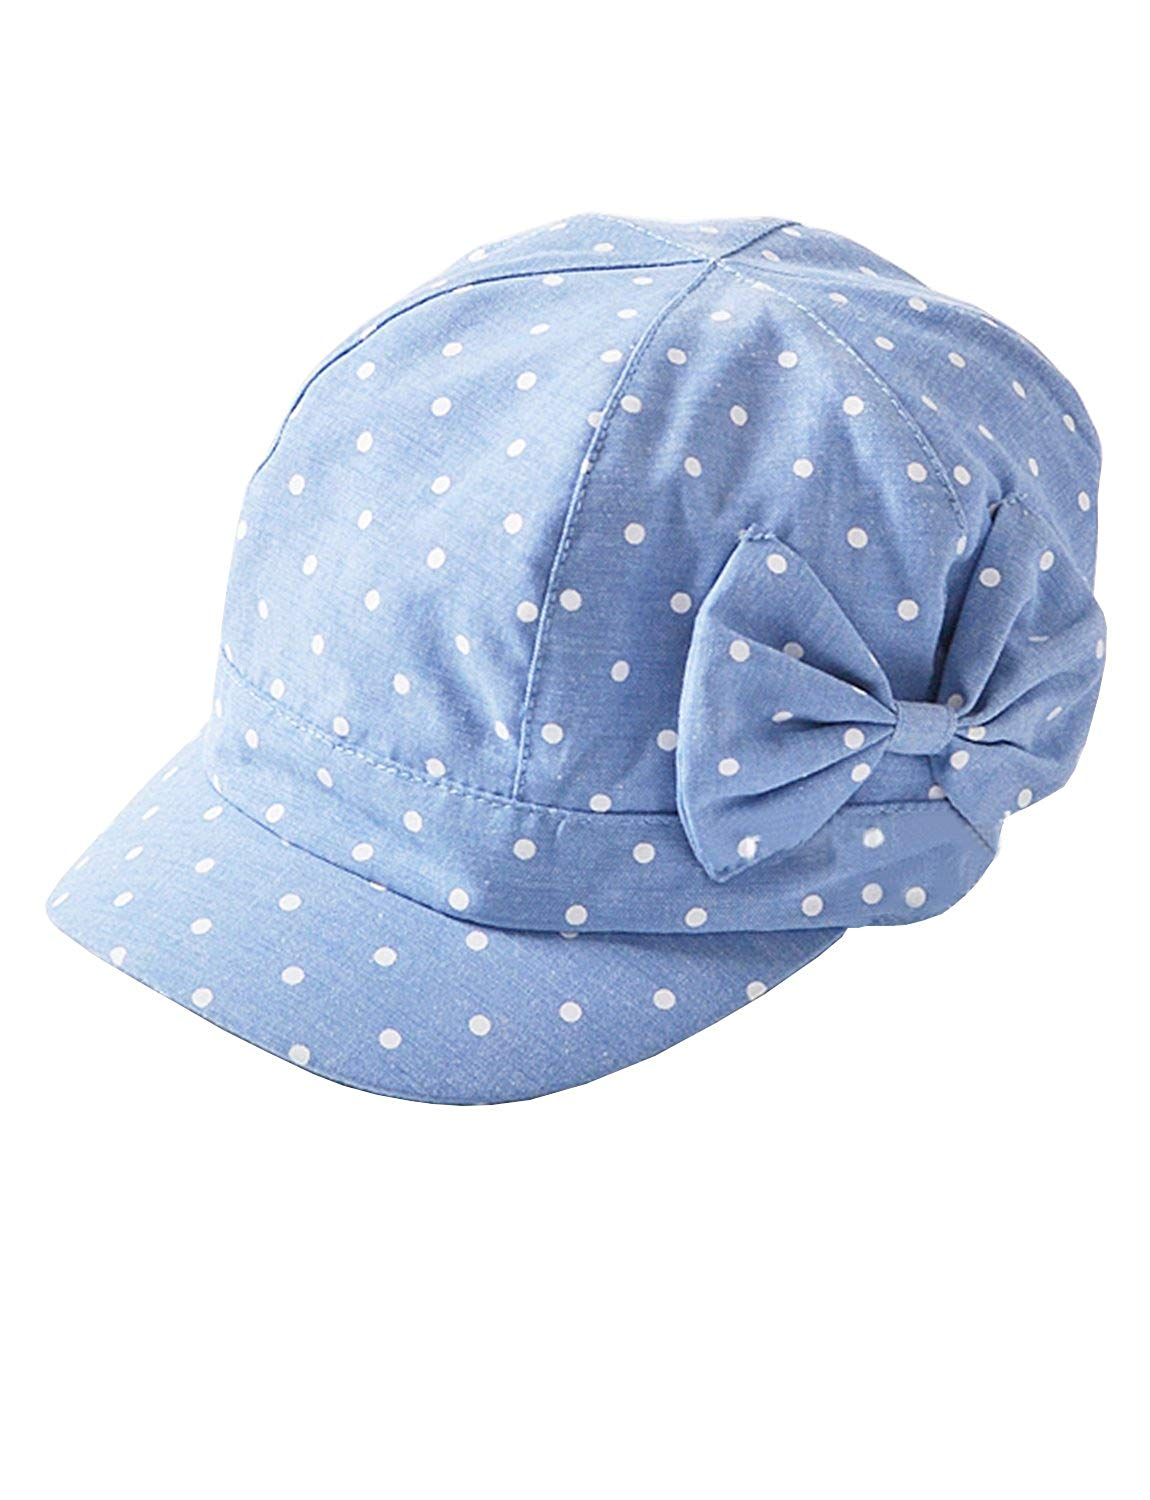 MZLIU Toddler Baby Girls Cute Polka Dot Bowknot Denim Cotton Cap Sun Hat(6m-4T)